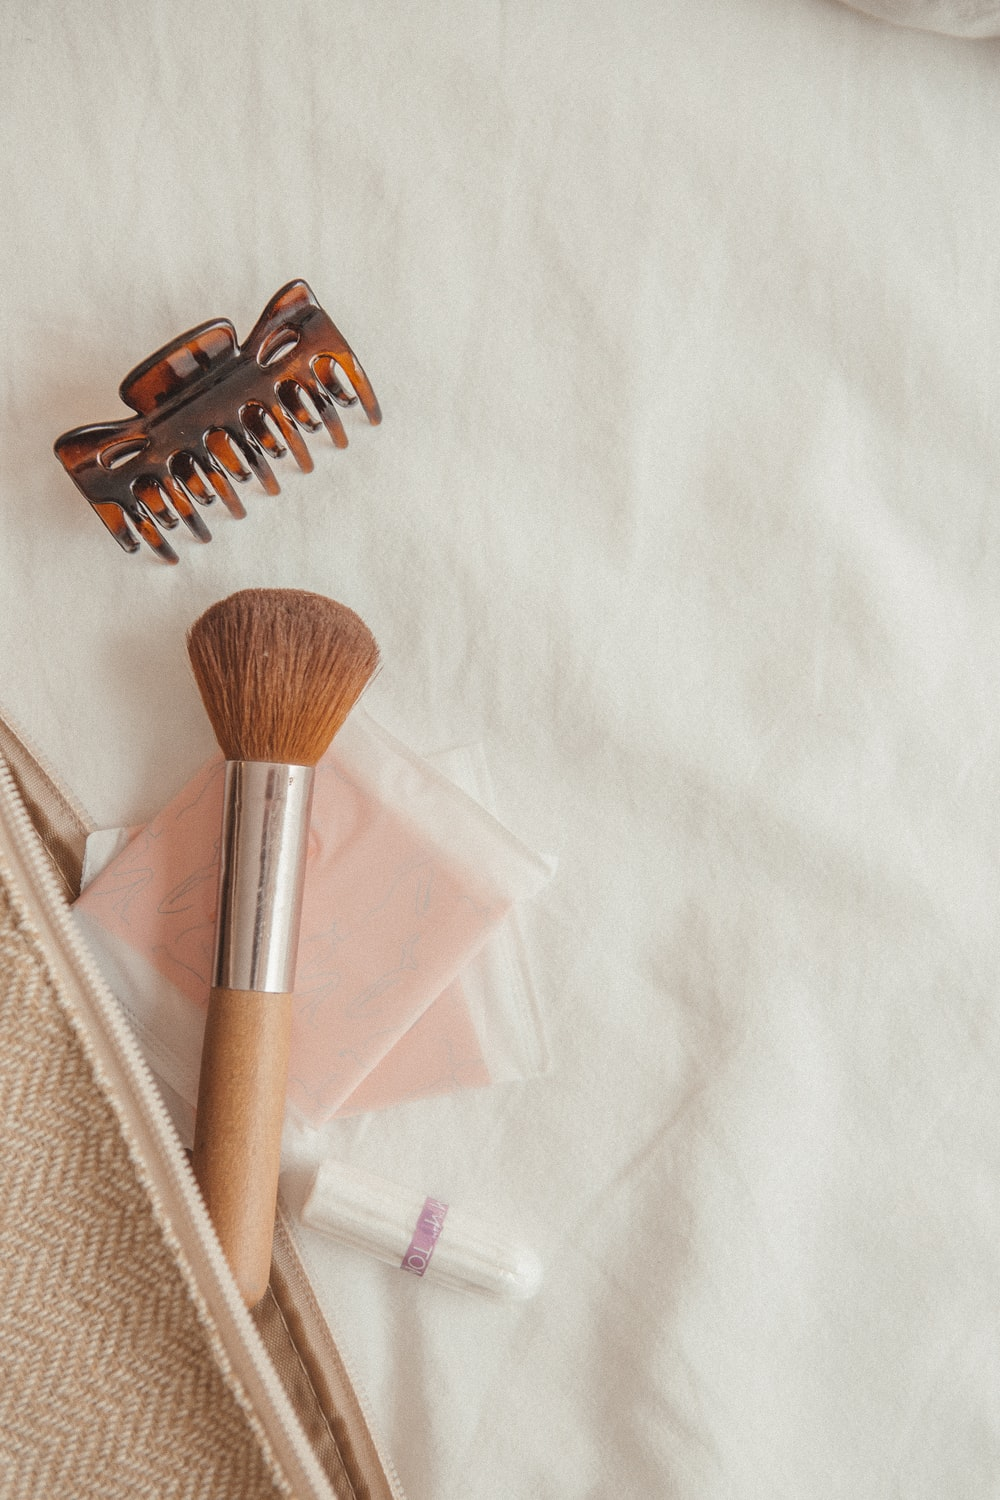 brown and silver makeup brush